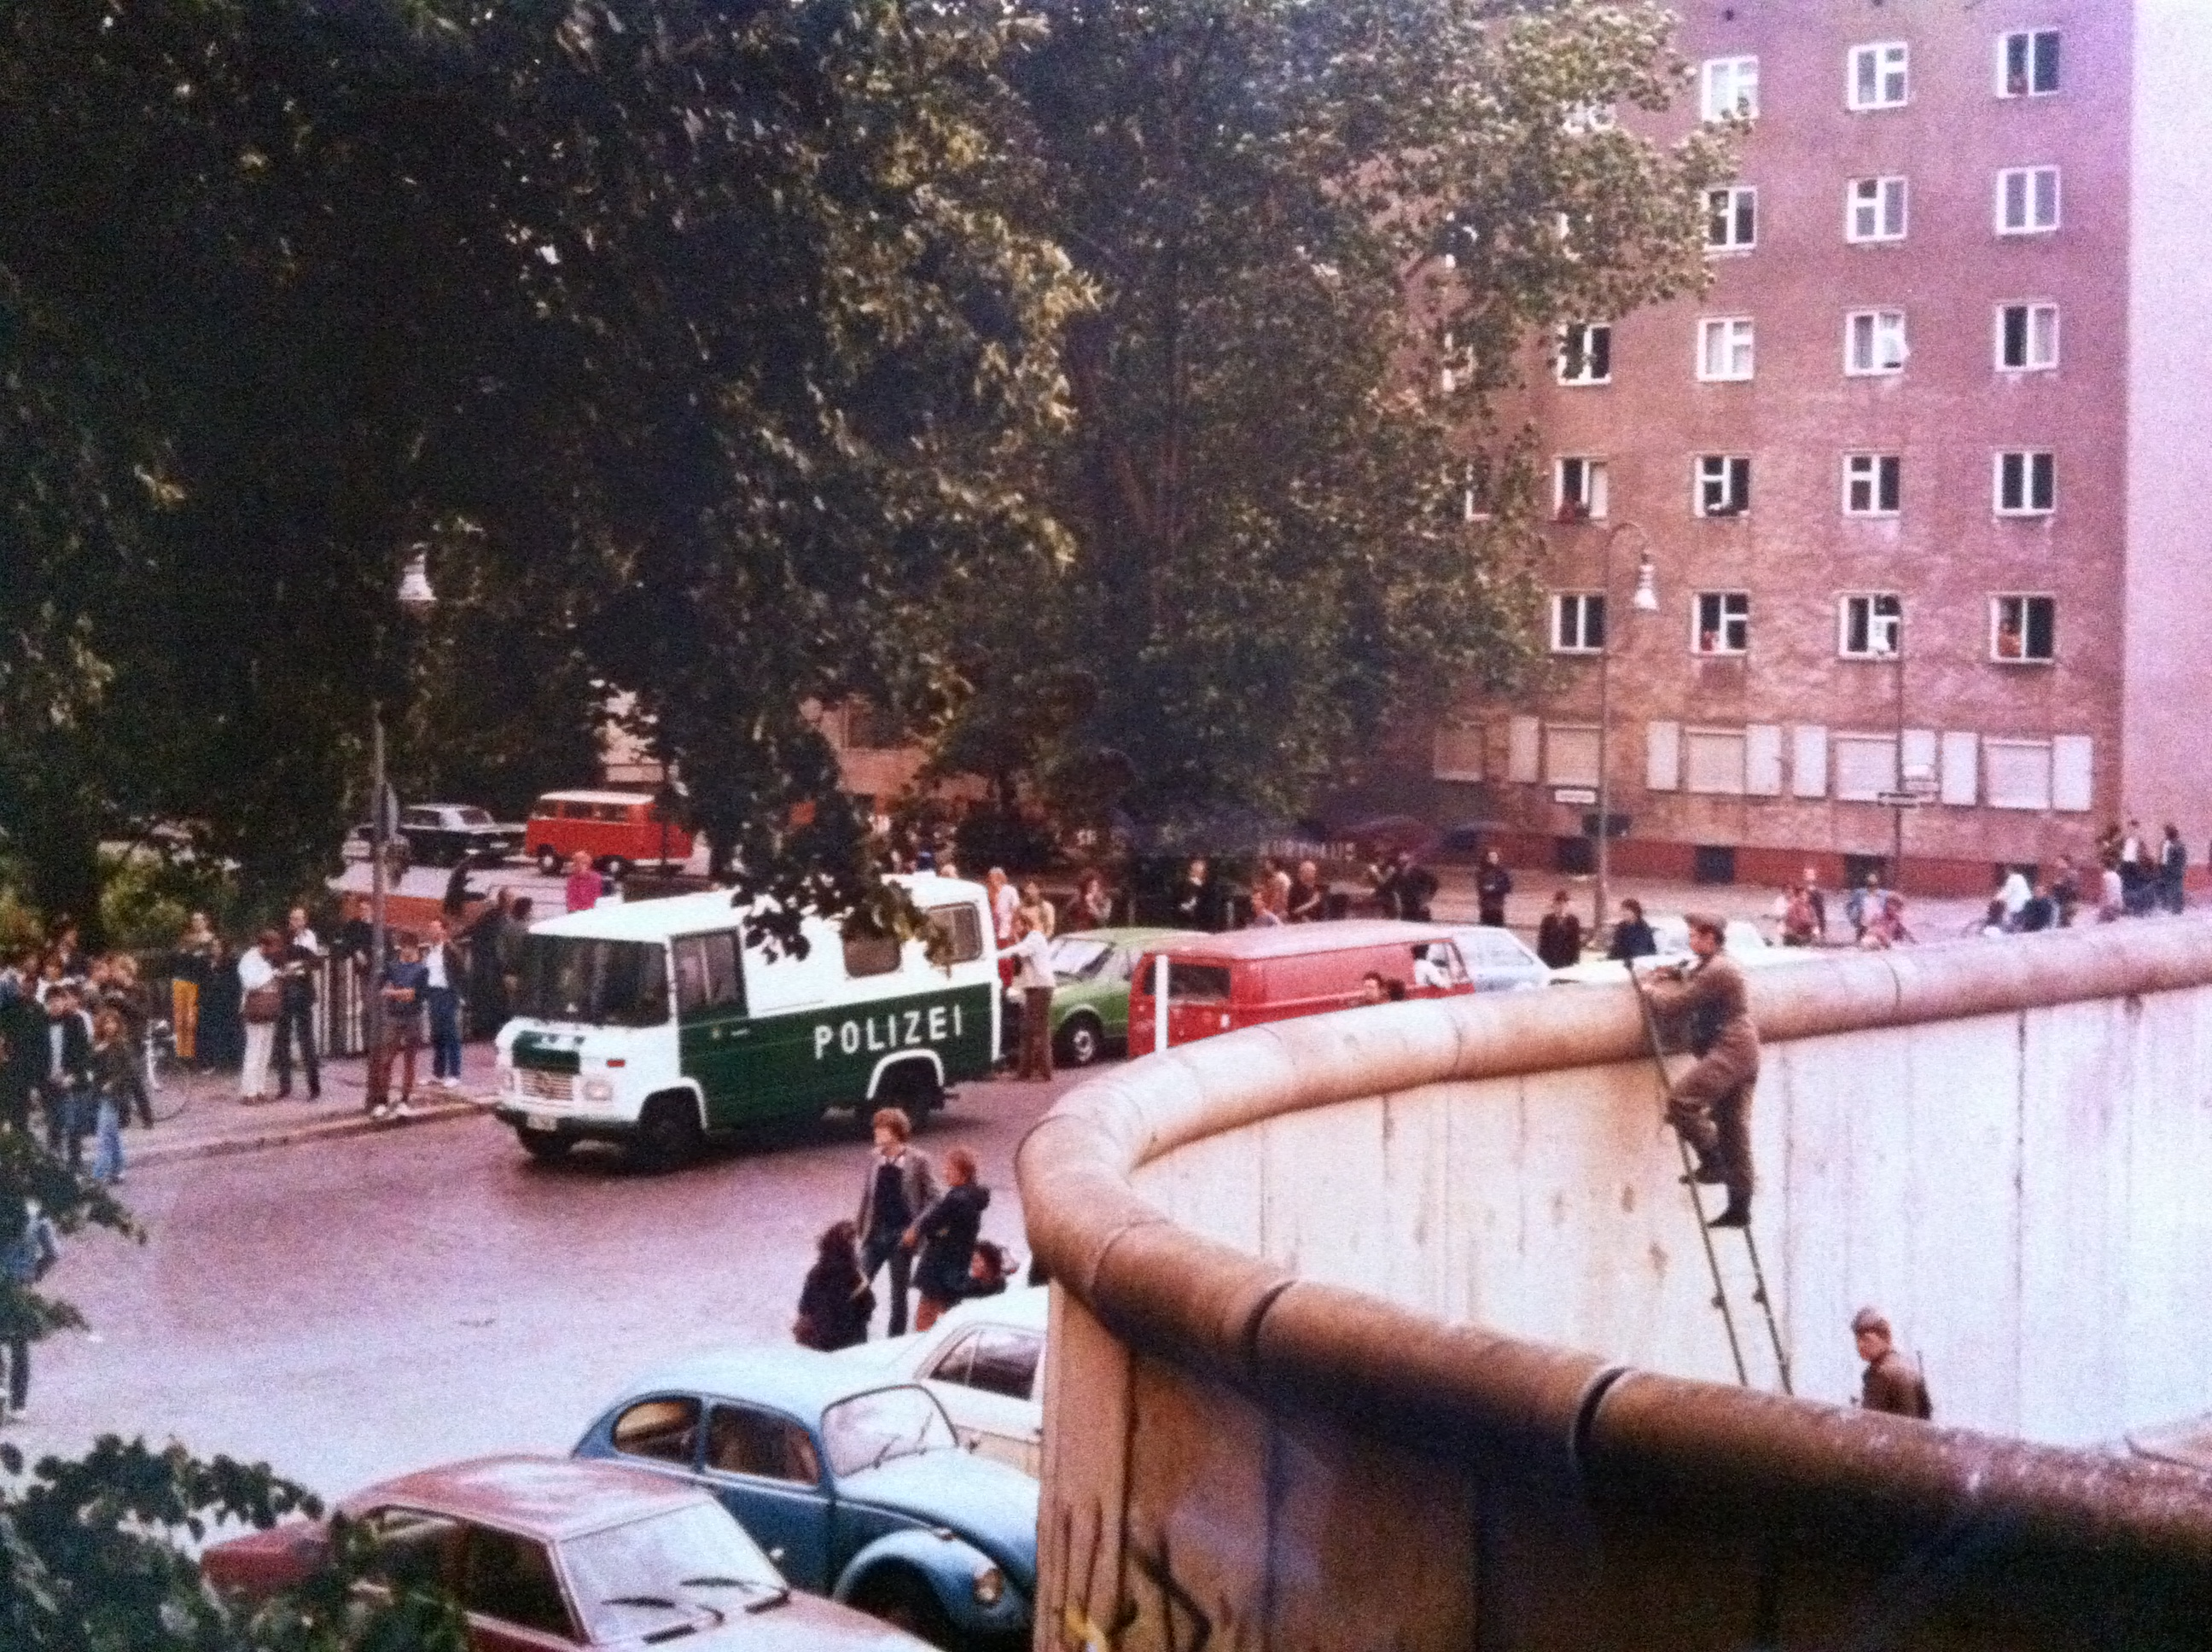 Berlin 1982: Demonstration in Kreuzberg und neugierige Grenzer in Ostberlin